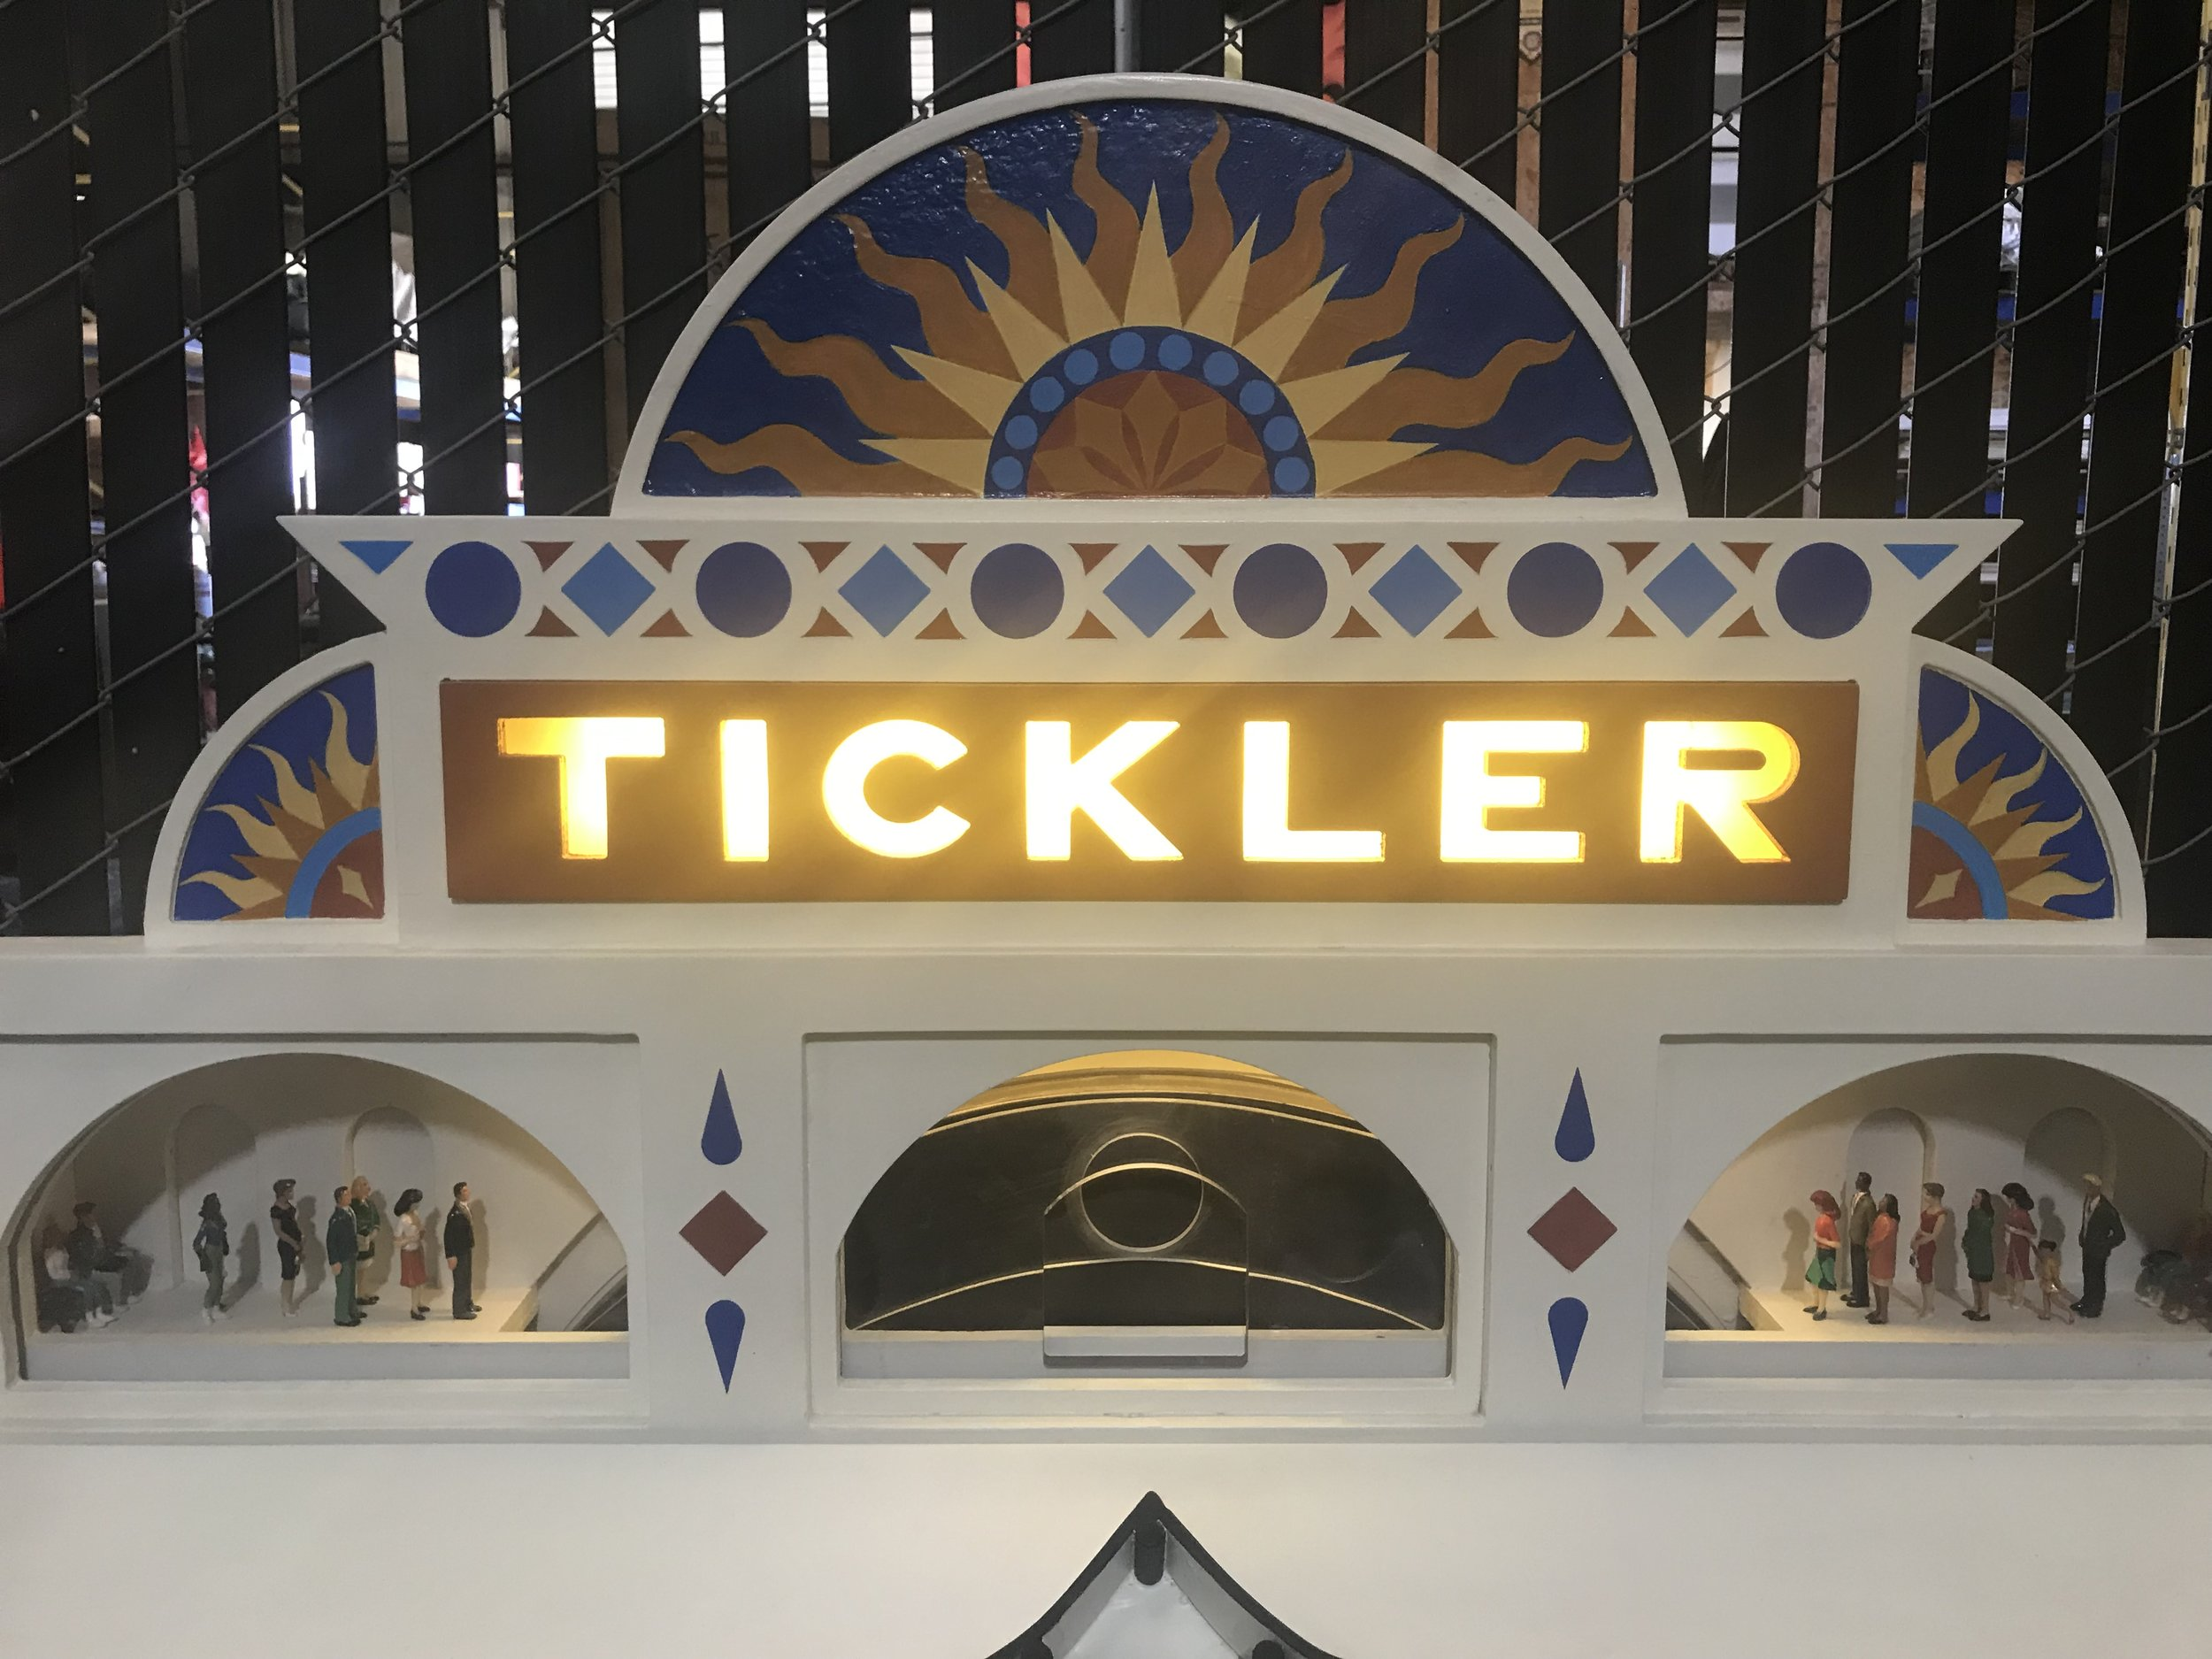 Tickler signage & ornamentation